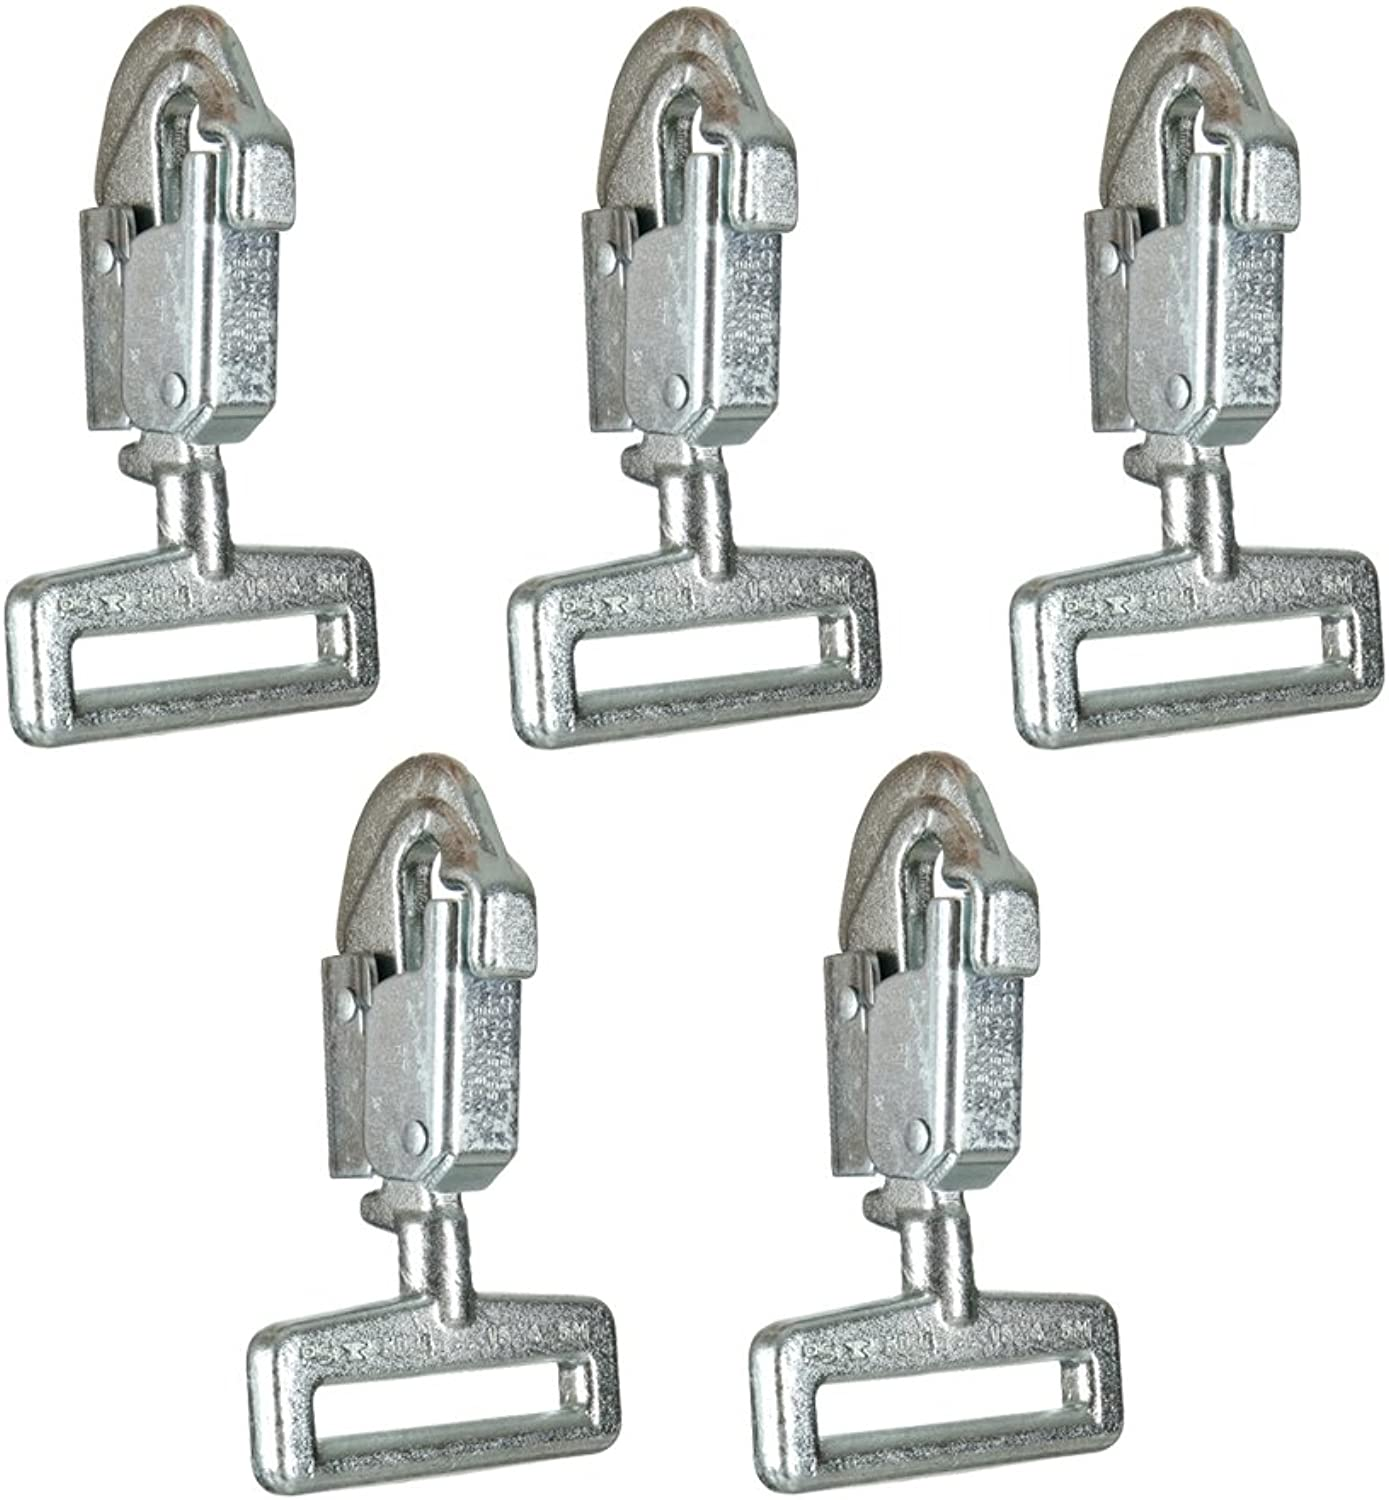 Fusion Climb Cobra Carbon Steel Drop Forged Double Lock Snap Hook 5Pack